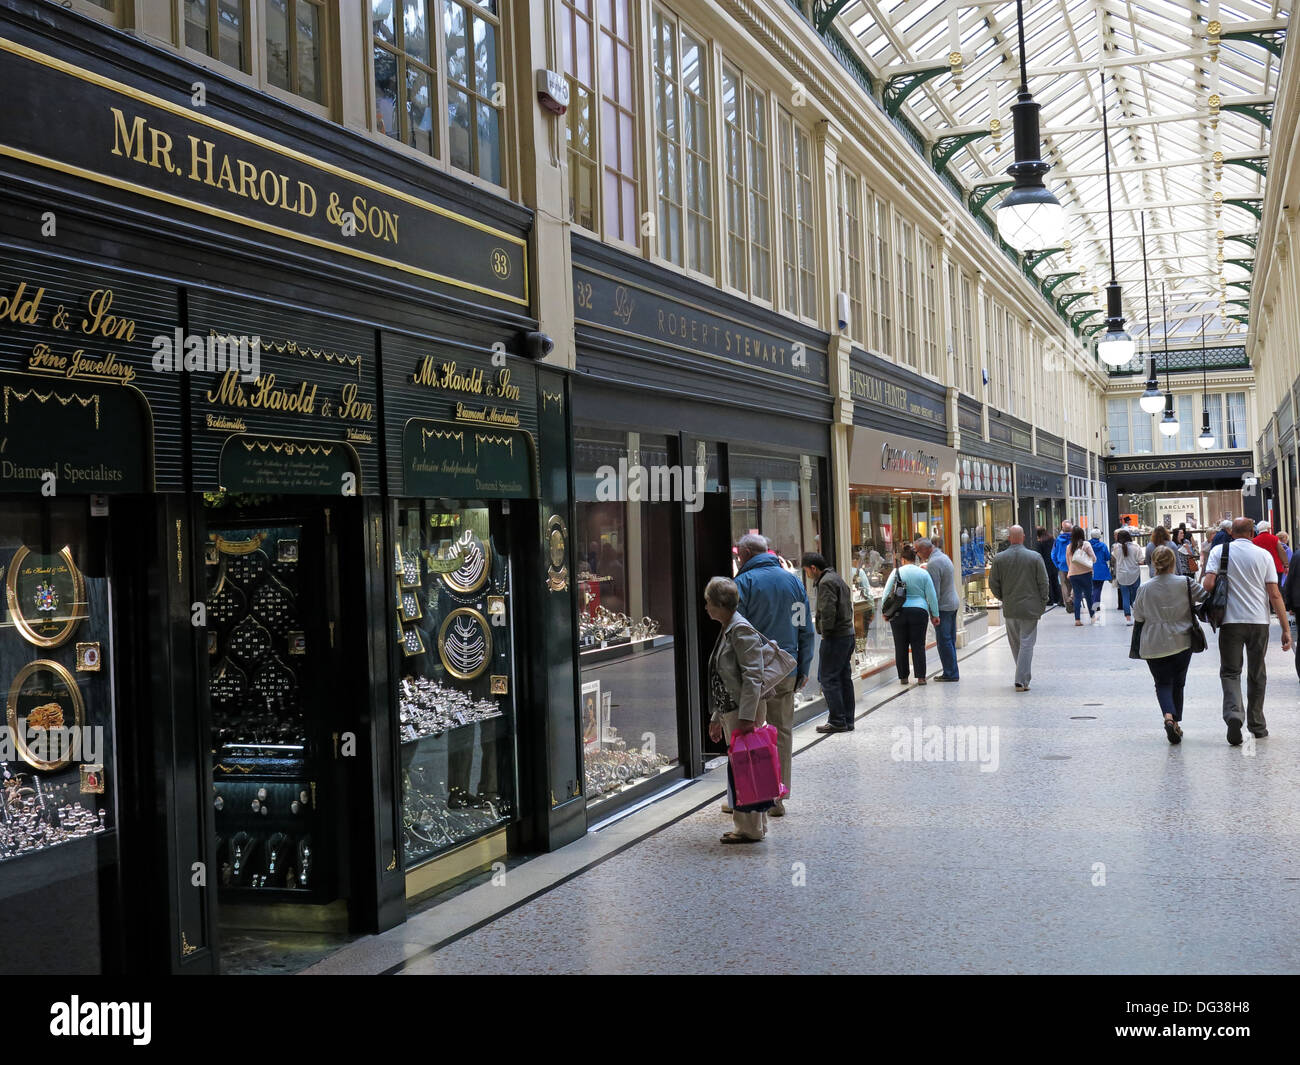 Mr Harold & Sons shop in the Argyll Arcade Victorian Glasgow shopping mall , Scotland, UK Stock Photo